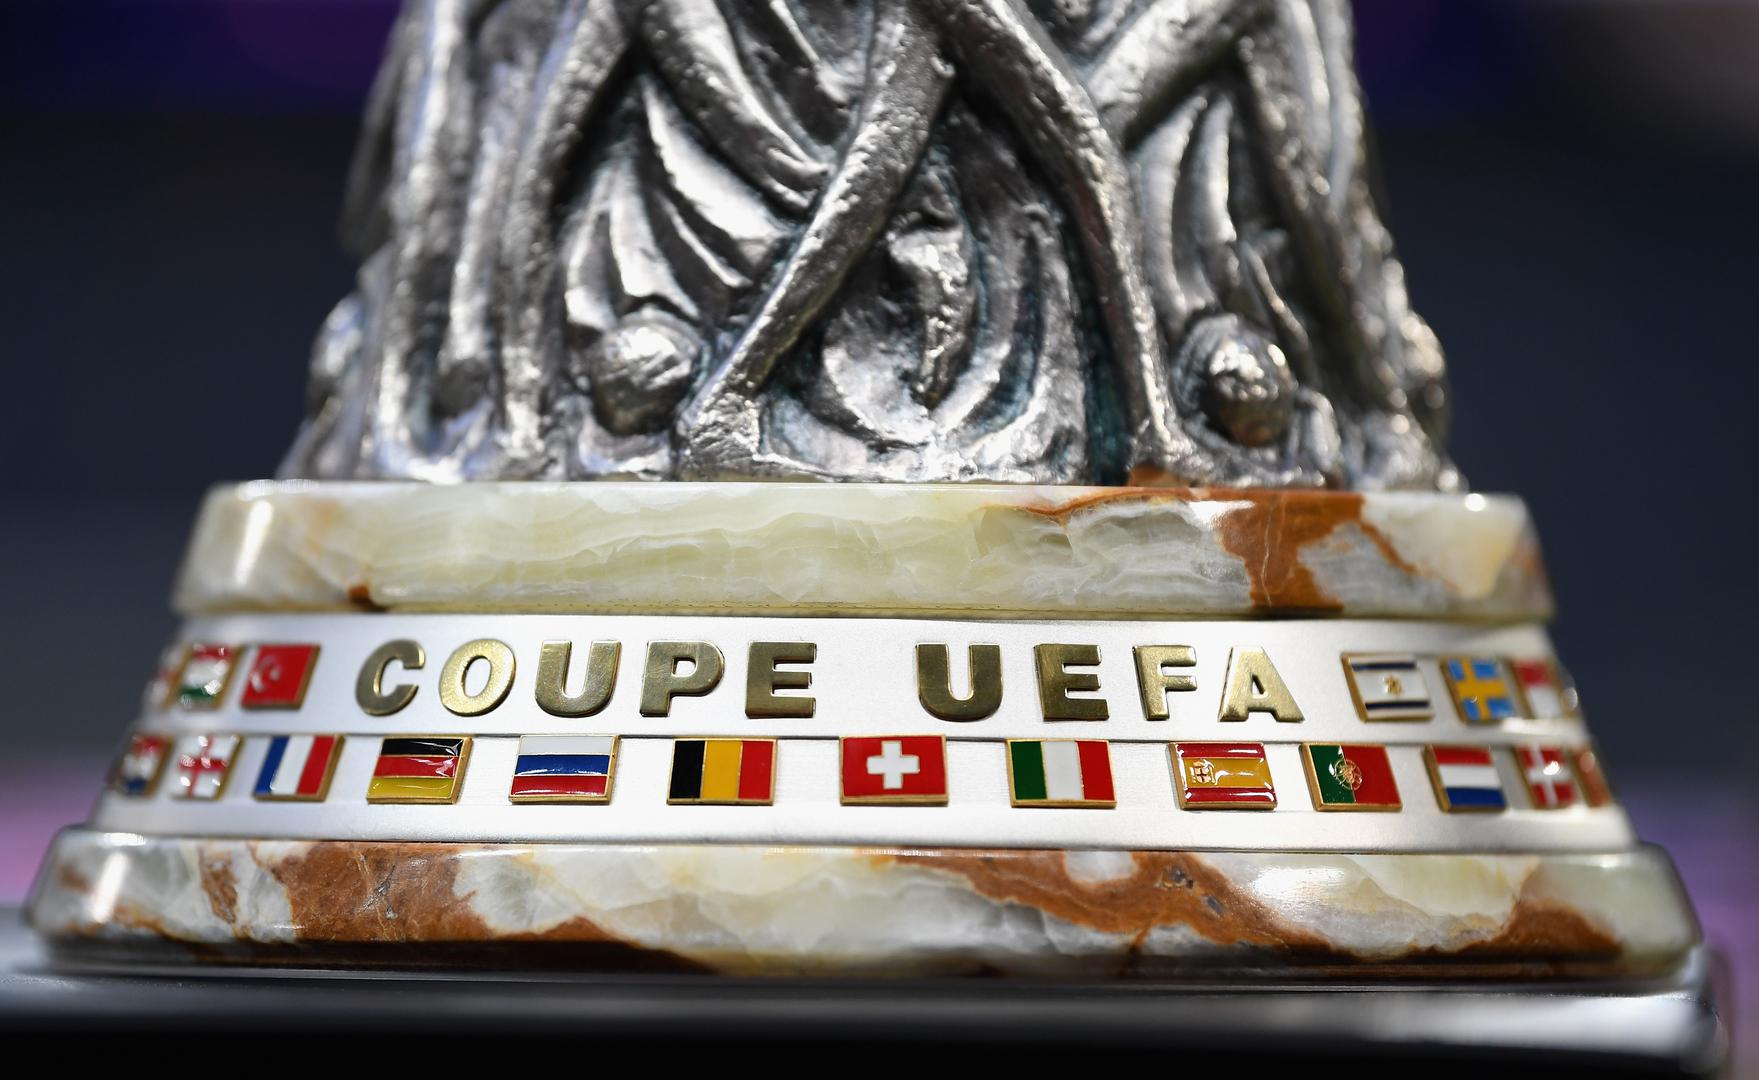 A close-up of the Europa League trophy